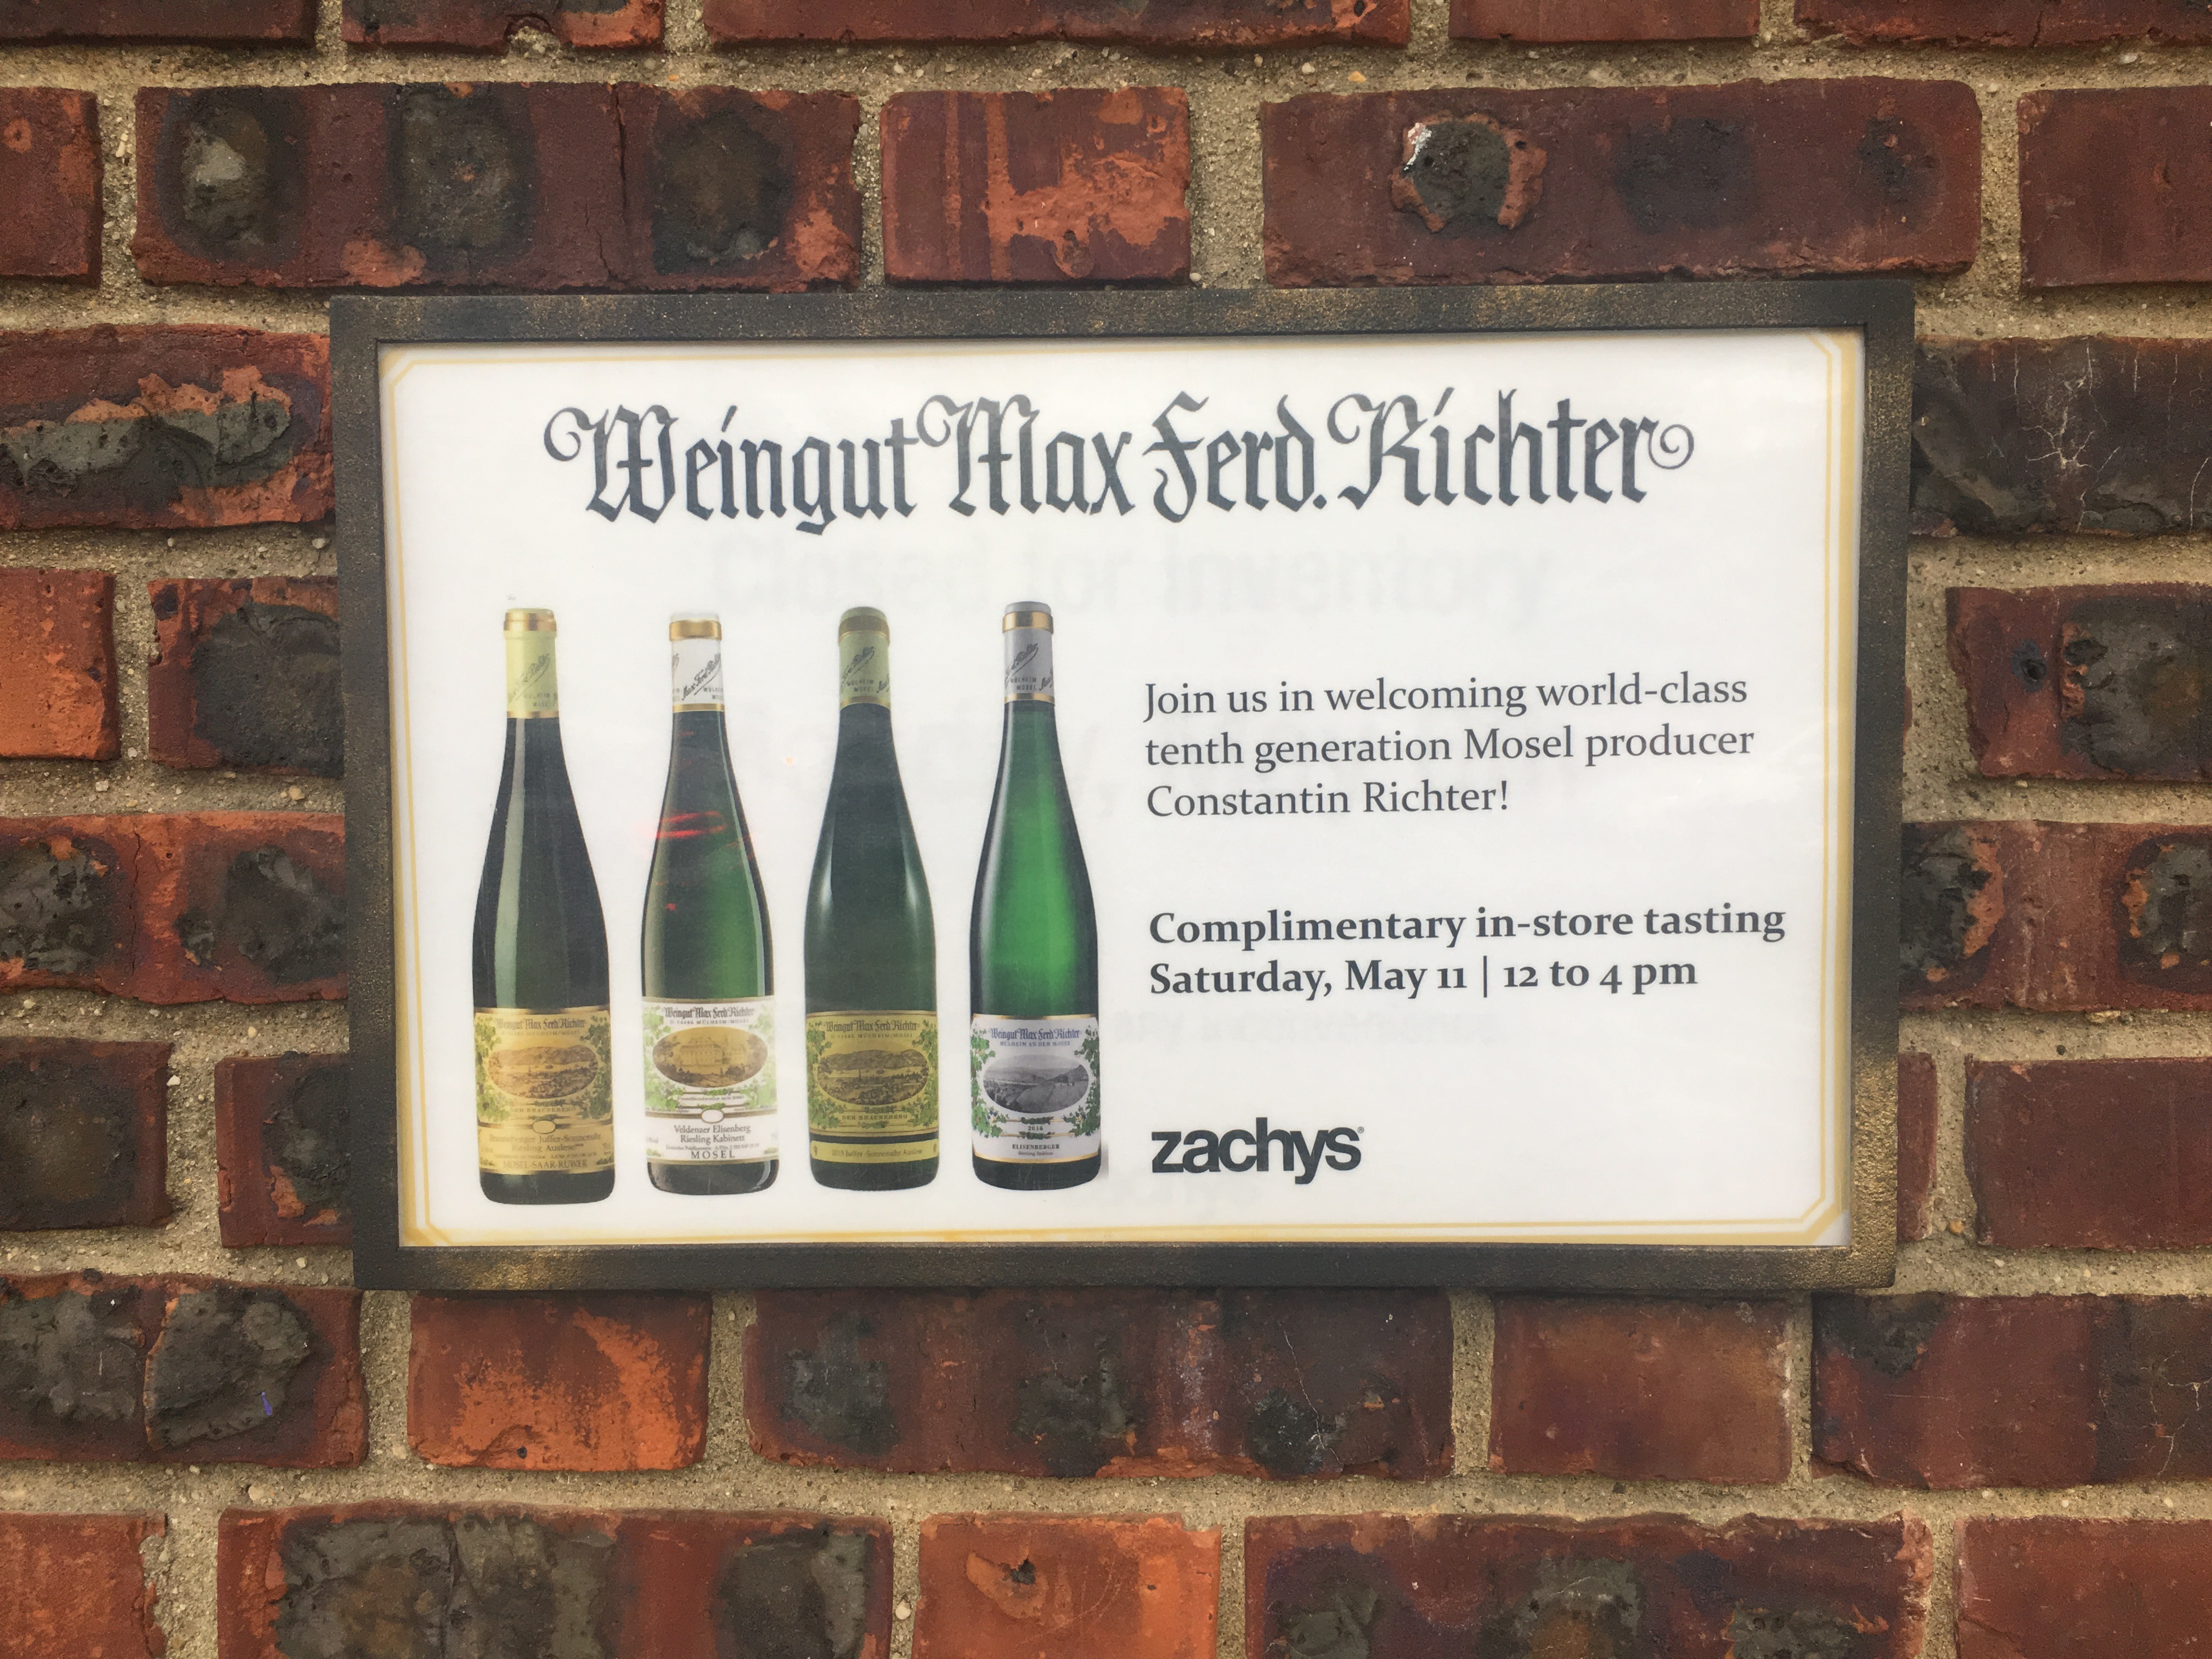 outside of store Richter Riesling's tasting event tabloid poster, yellow double border